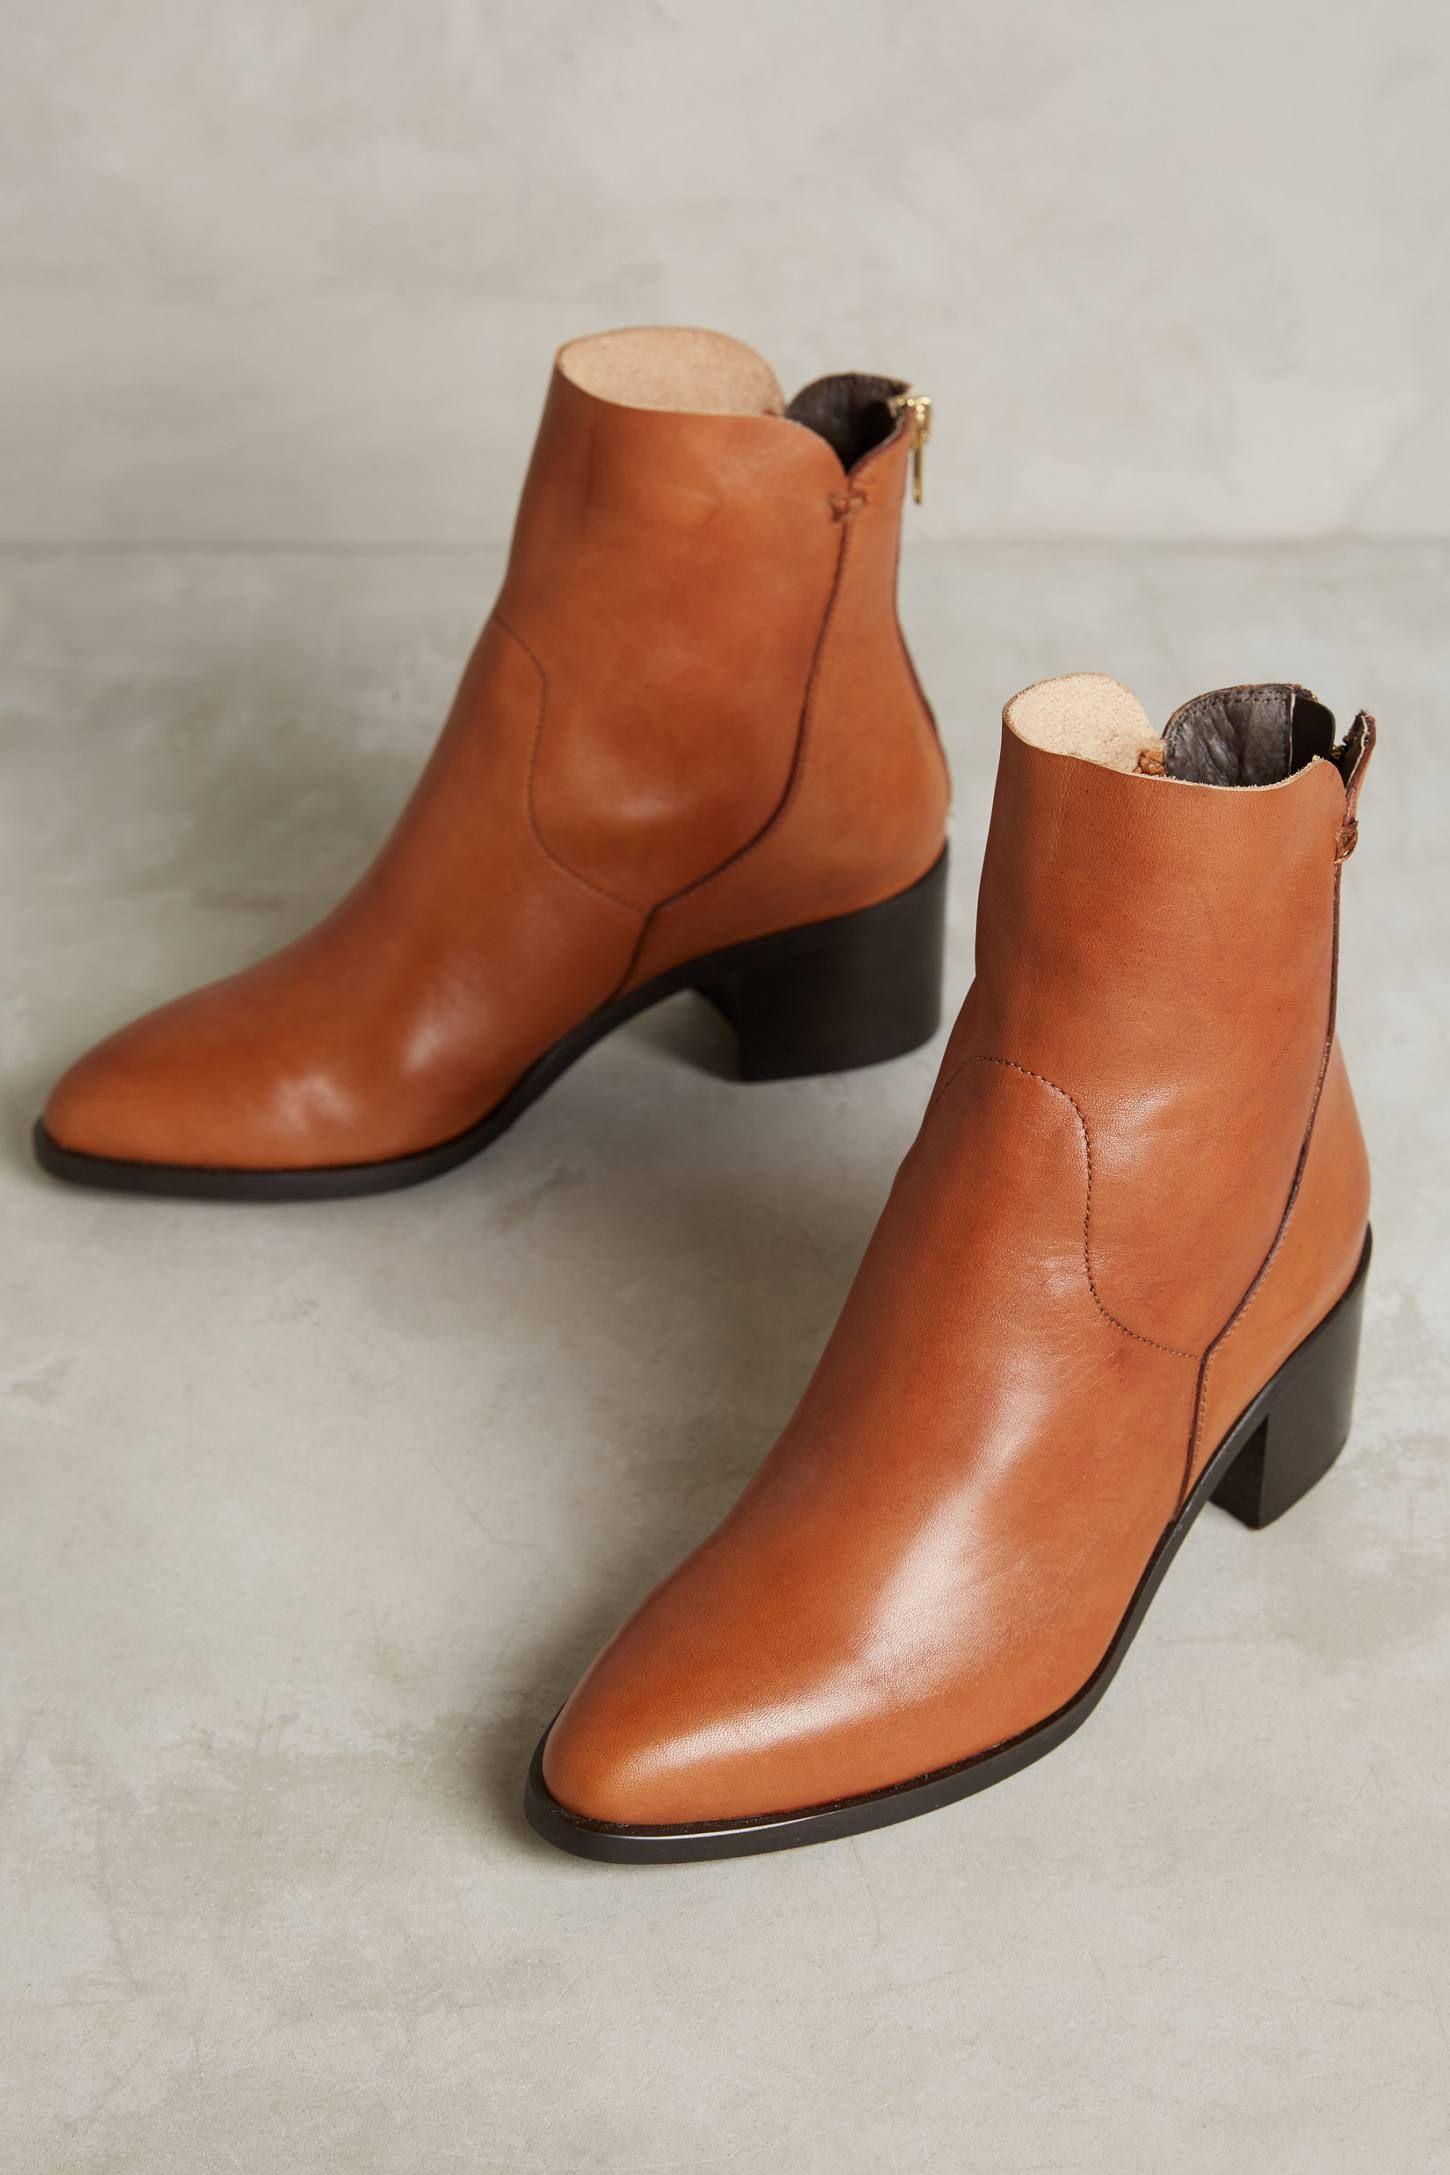 ALBA MODA PIMTY women's Low Ankle Boots in Perfect Cheap Price Particular Discount Real Shop Offer 100% Authentic Cheap Online iqjJdsZ